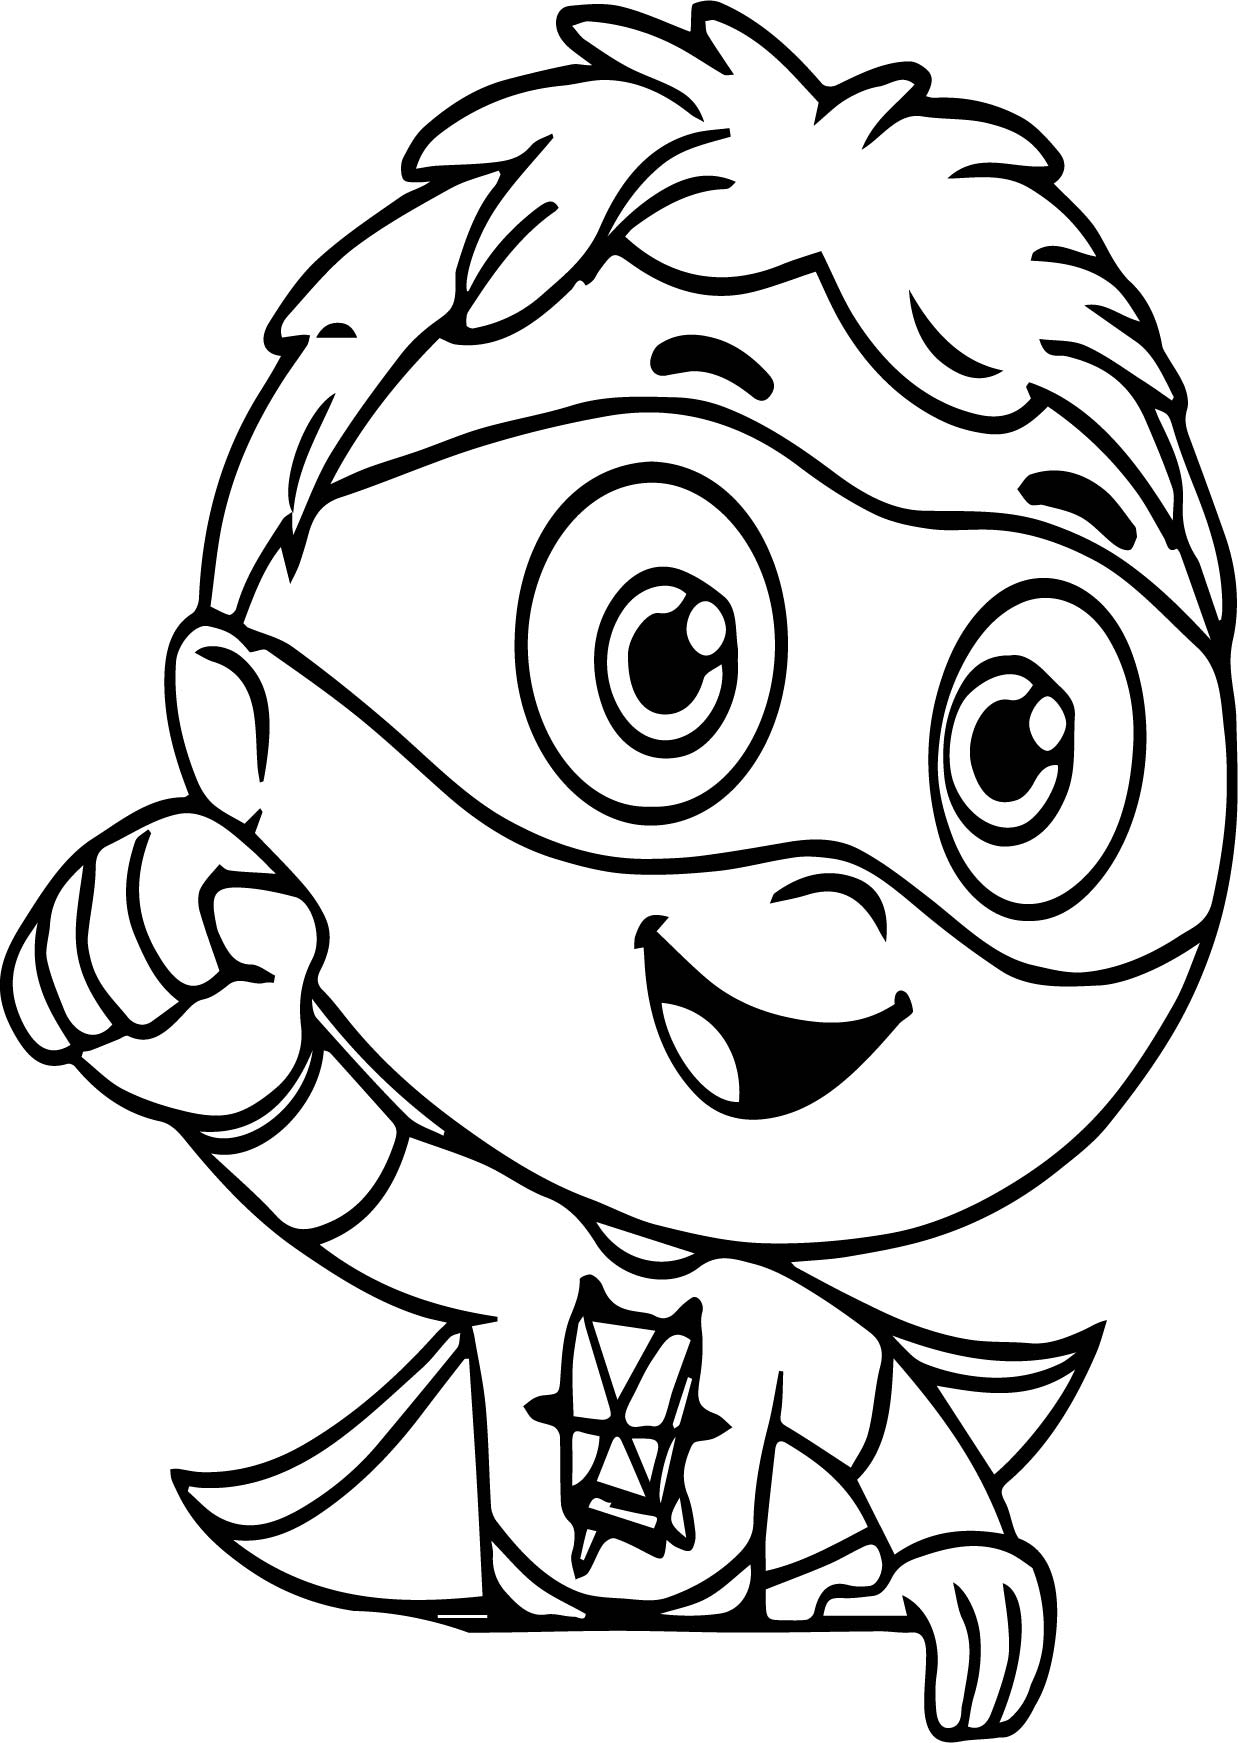 free printable kid coloring pages | Super Why Coloring Pages - Best Coloring Pages For Kids